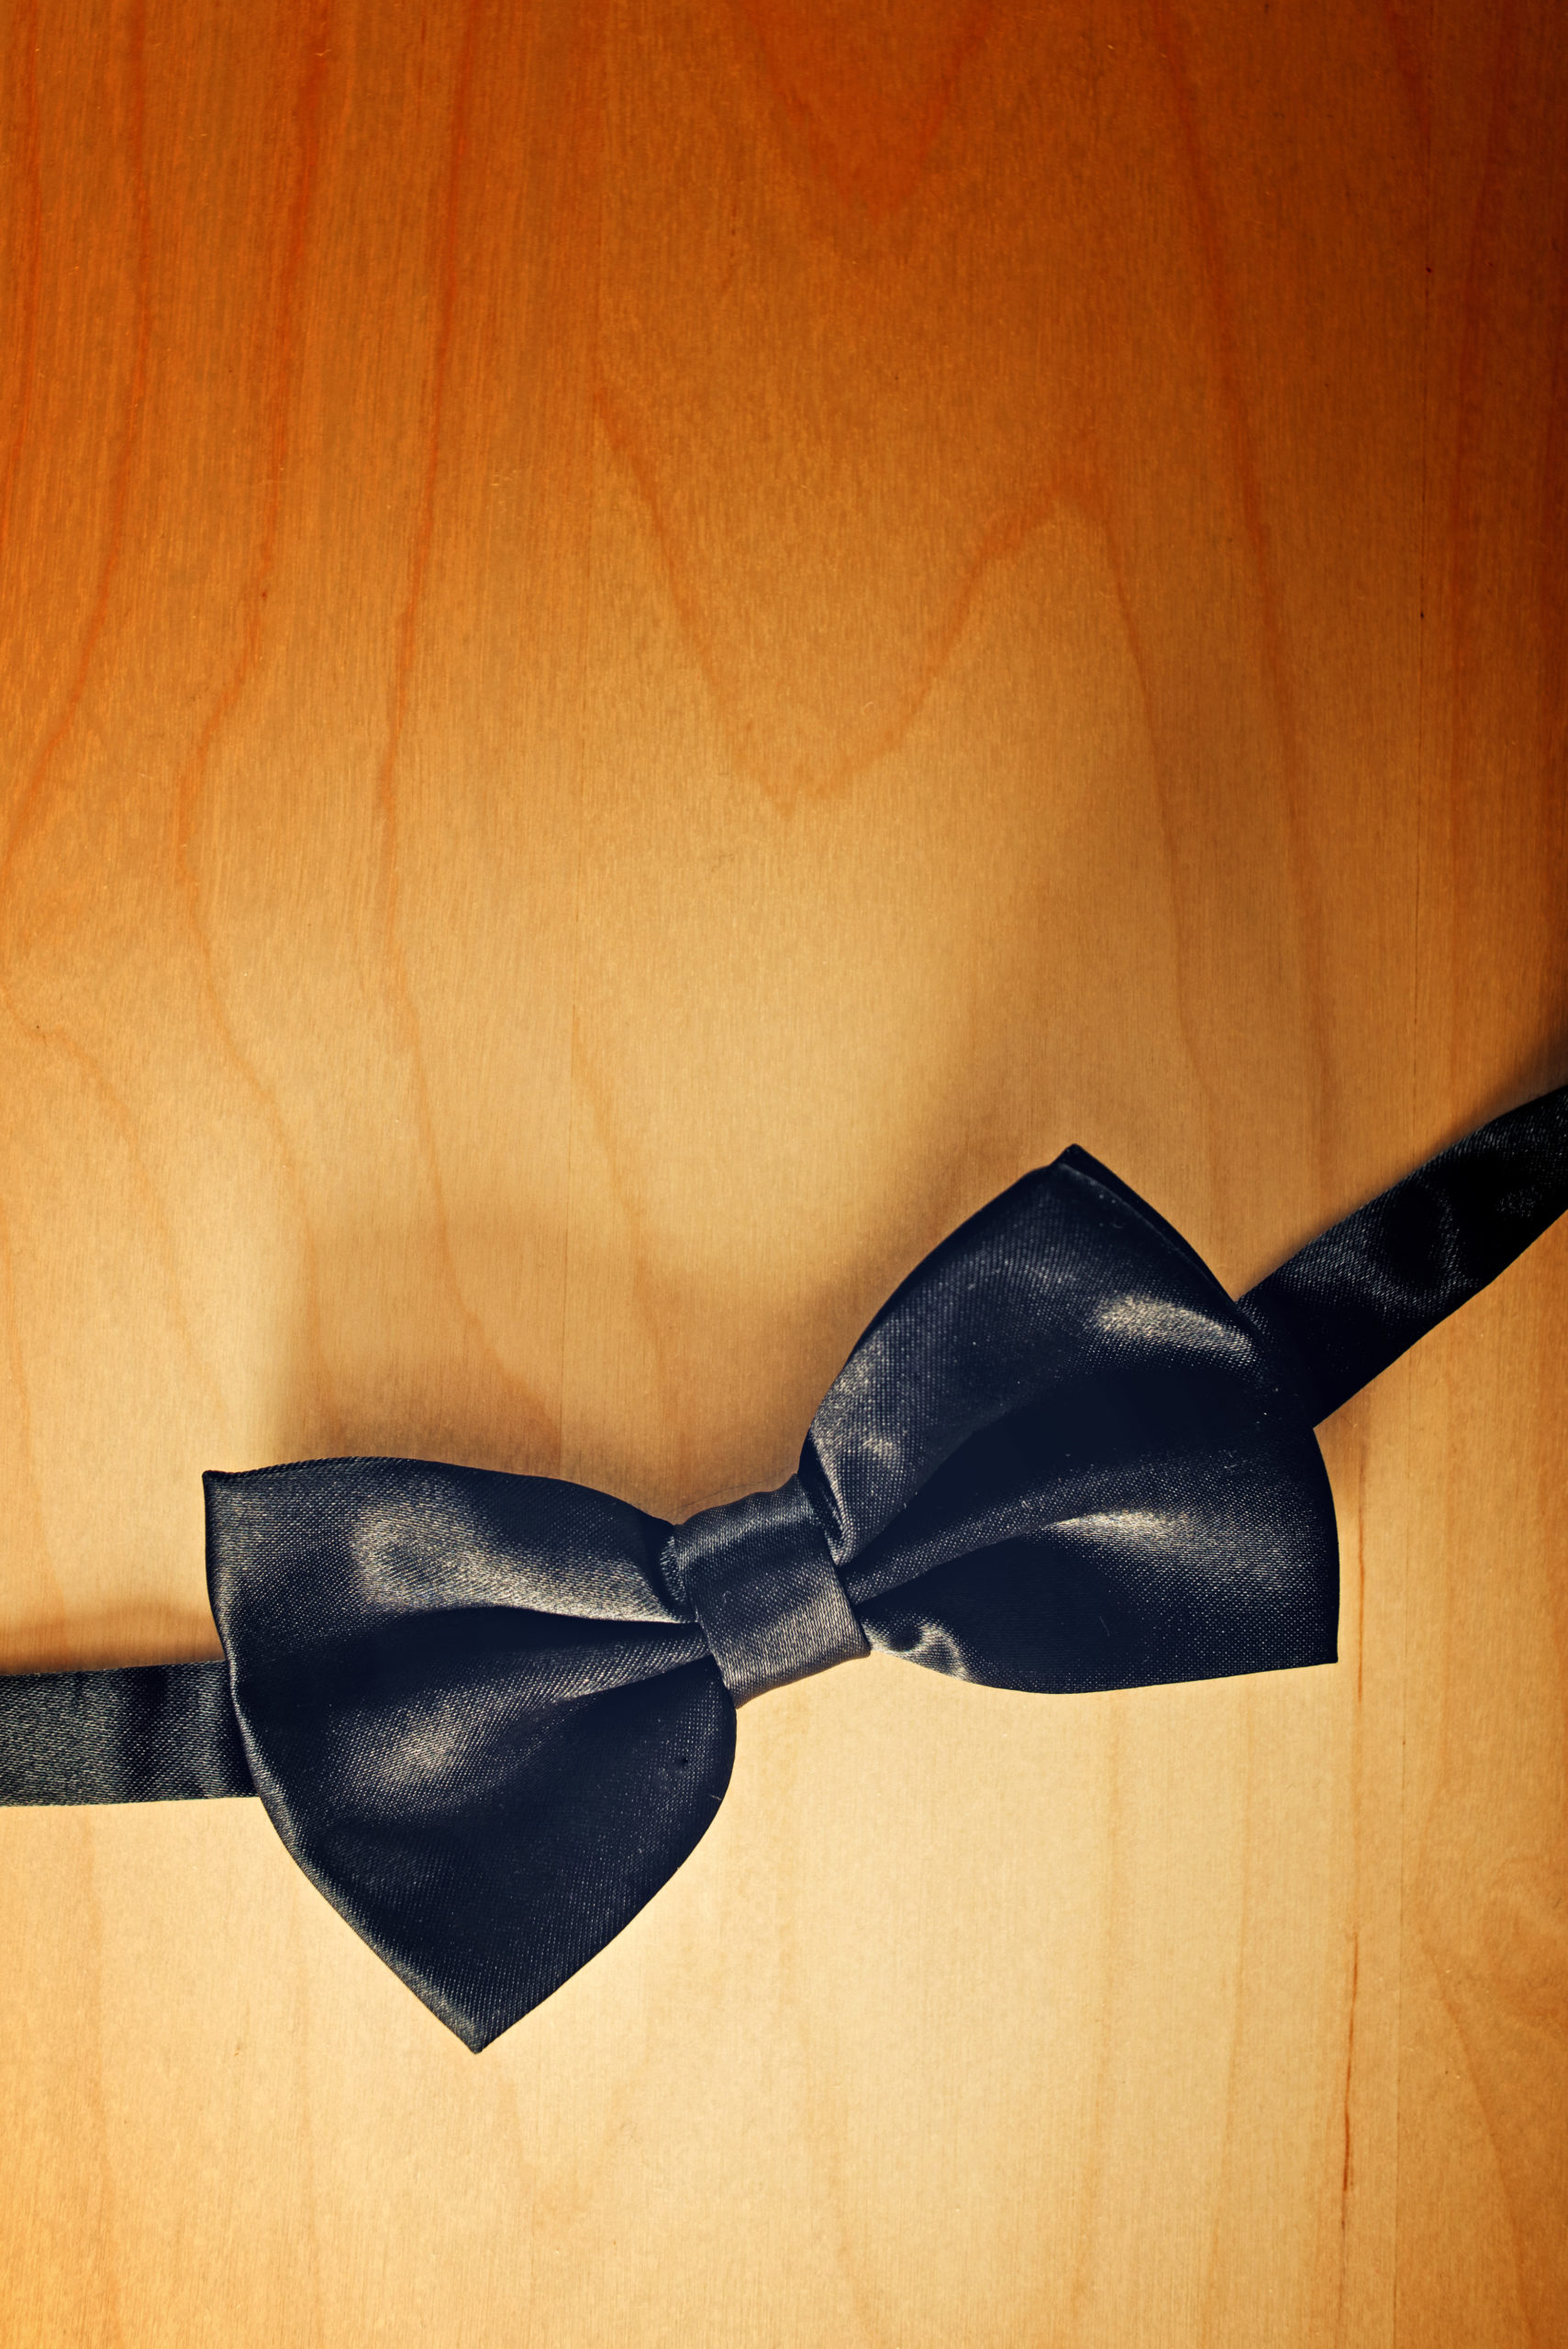 A Short History of the Bow Tie